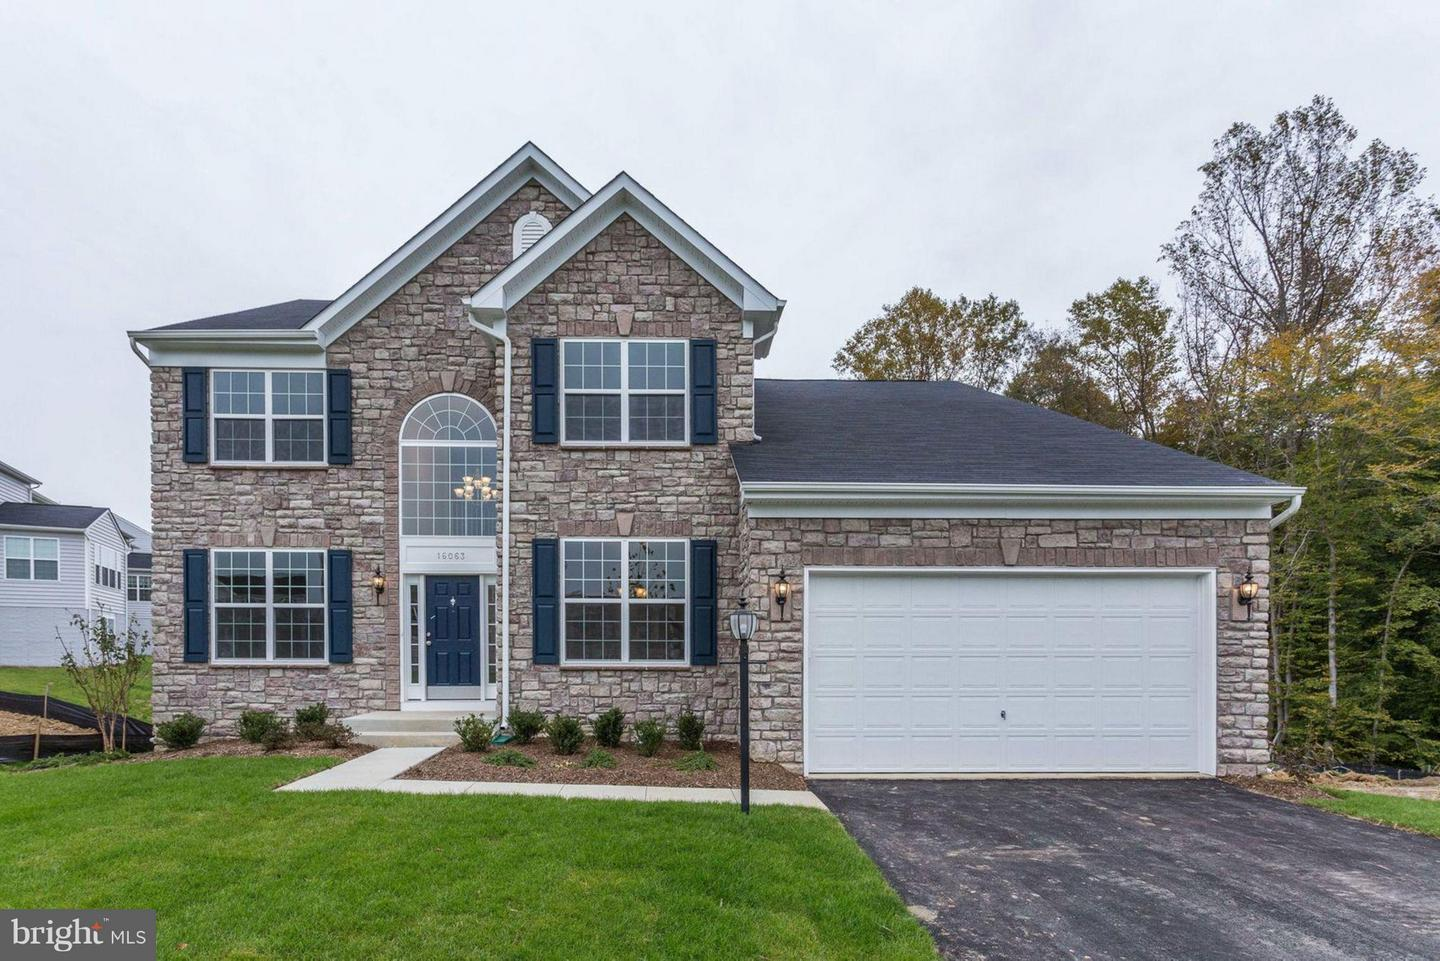 22193 Woodbridge Virginia United States Luxury Real Estate